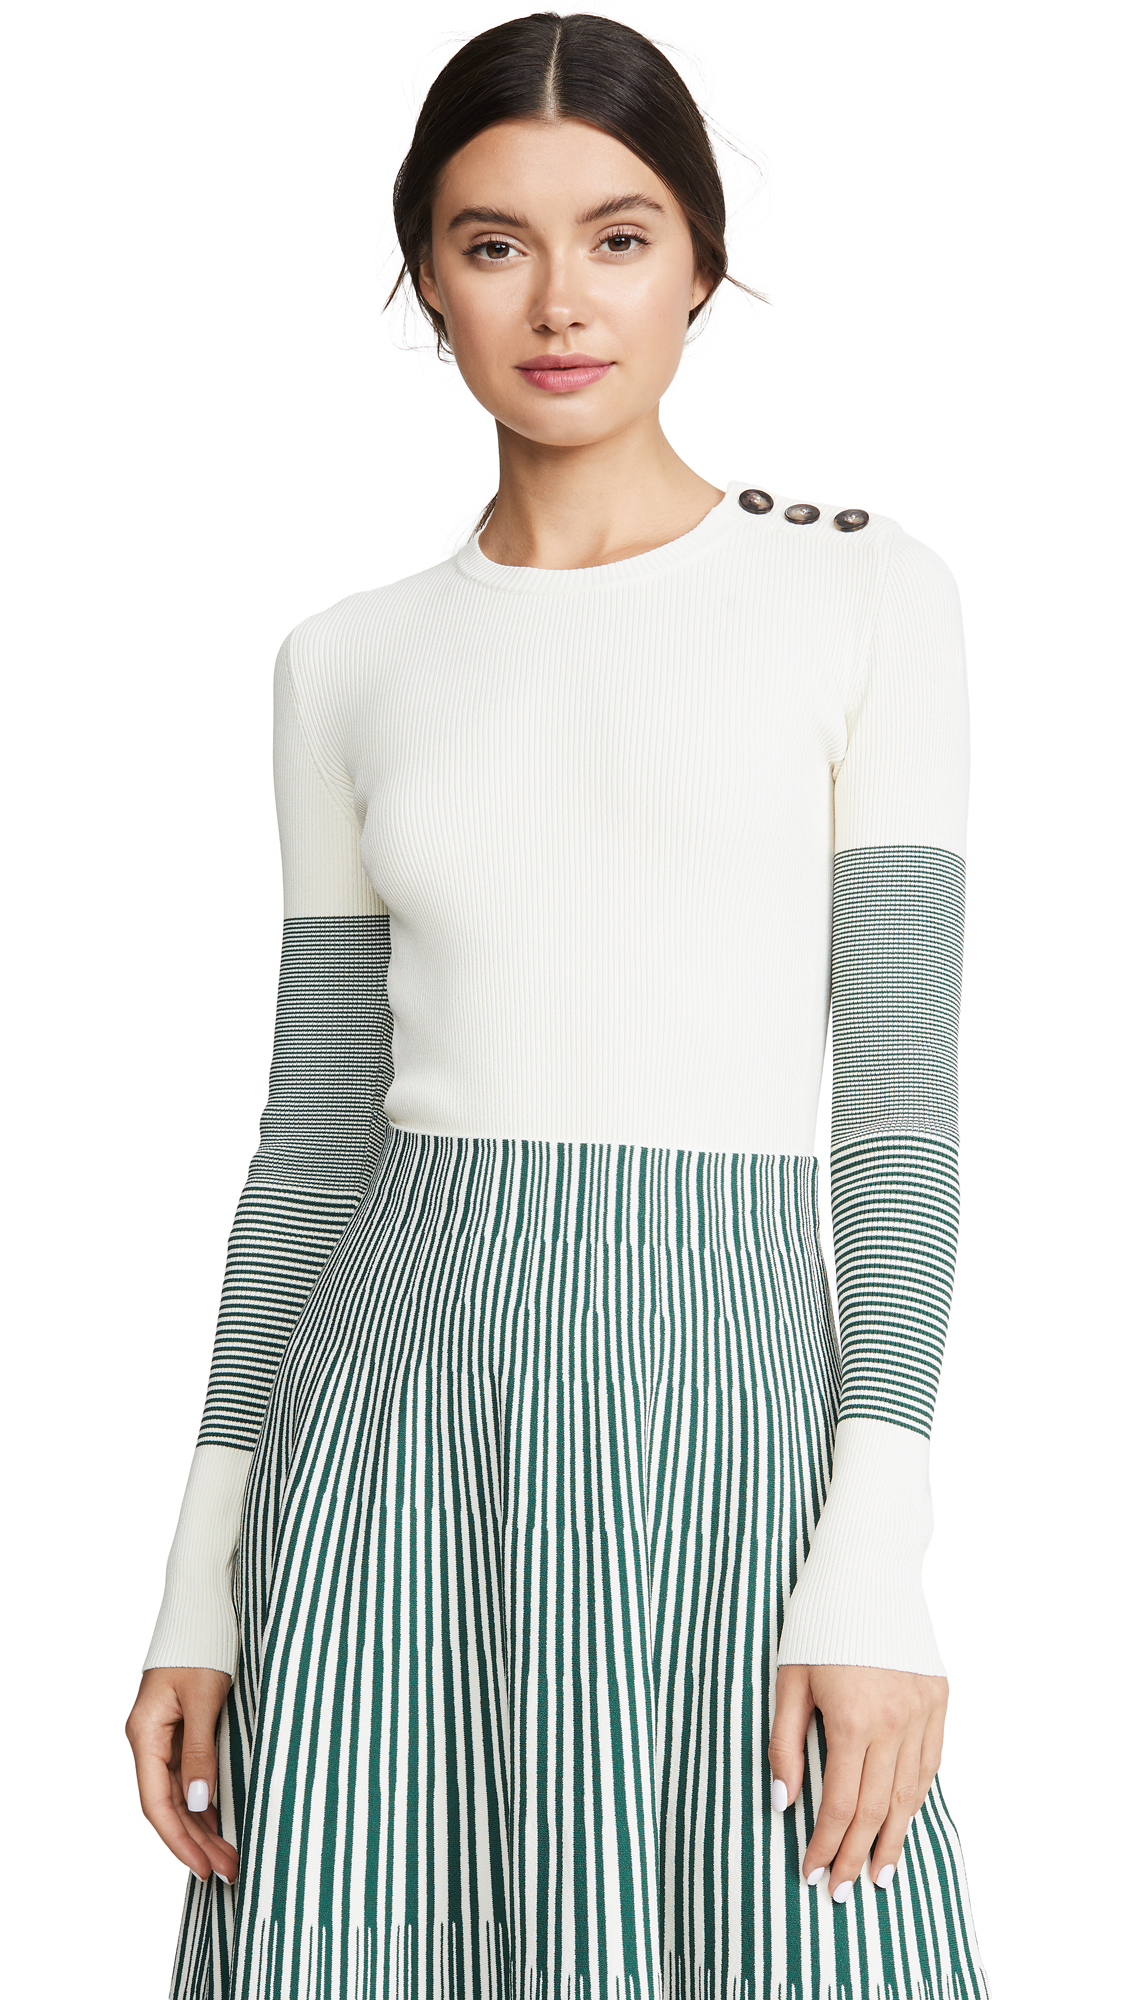 Cedric Charlier Contrast Sleeve Sweater - White/Grey